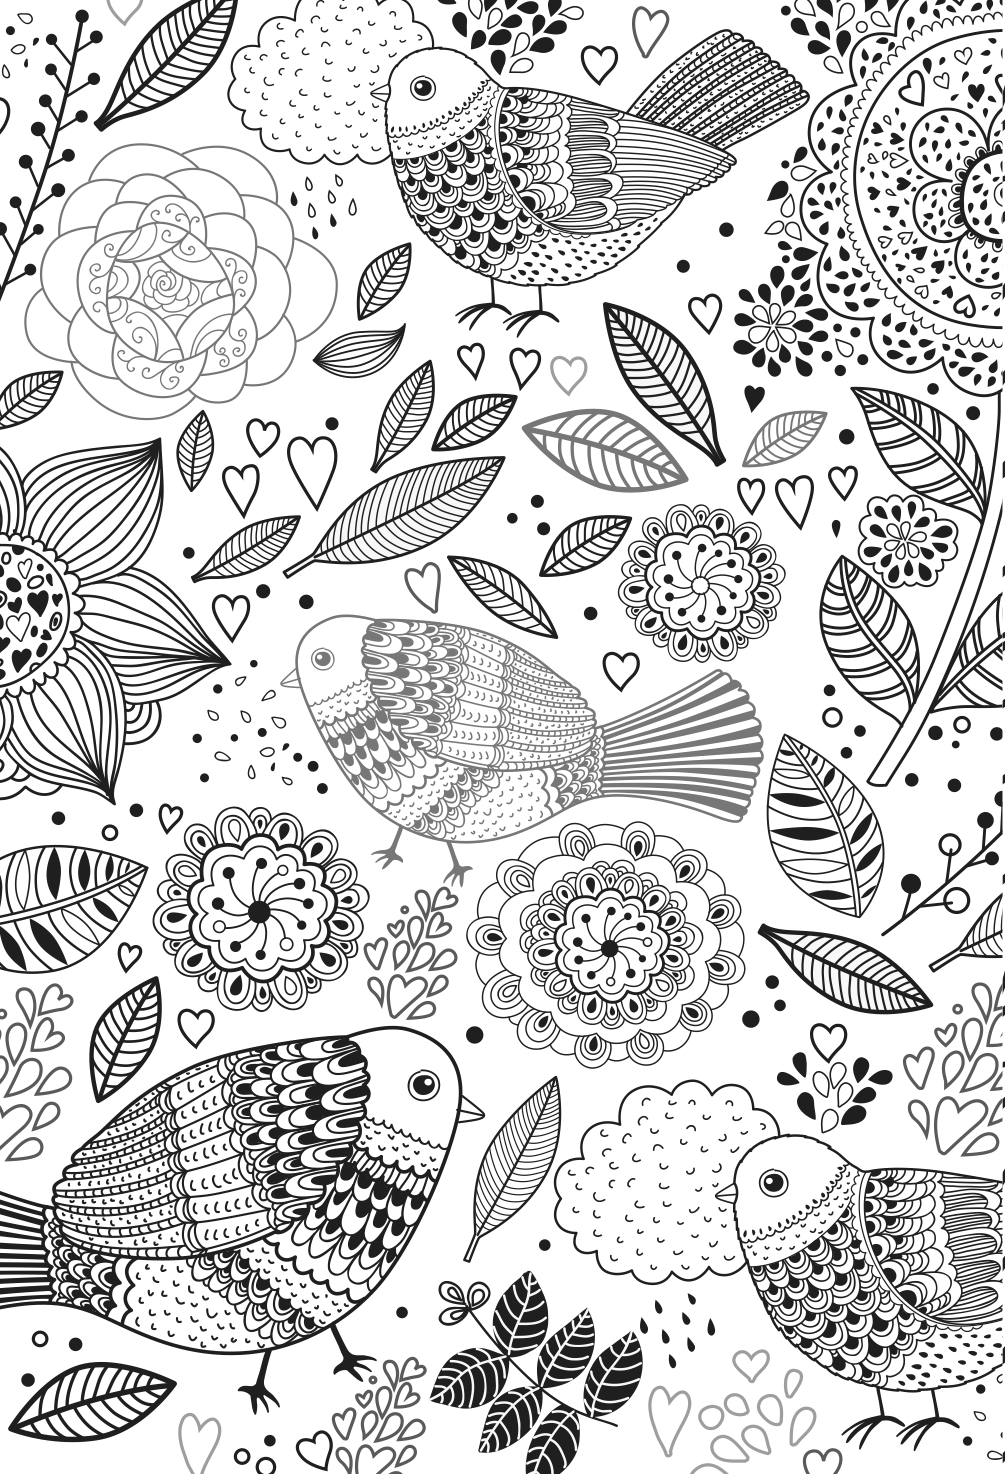 Colouring books for adults in the playroom Colouring book for adults online